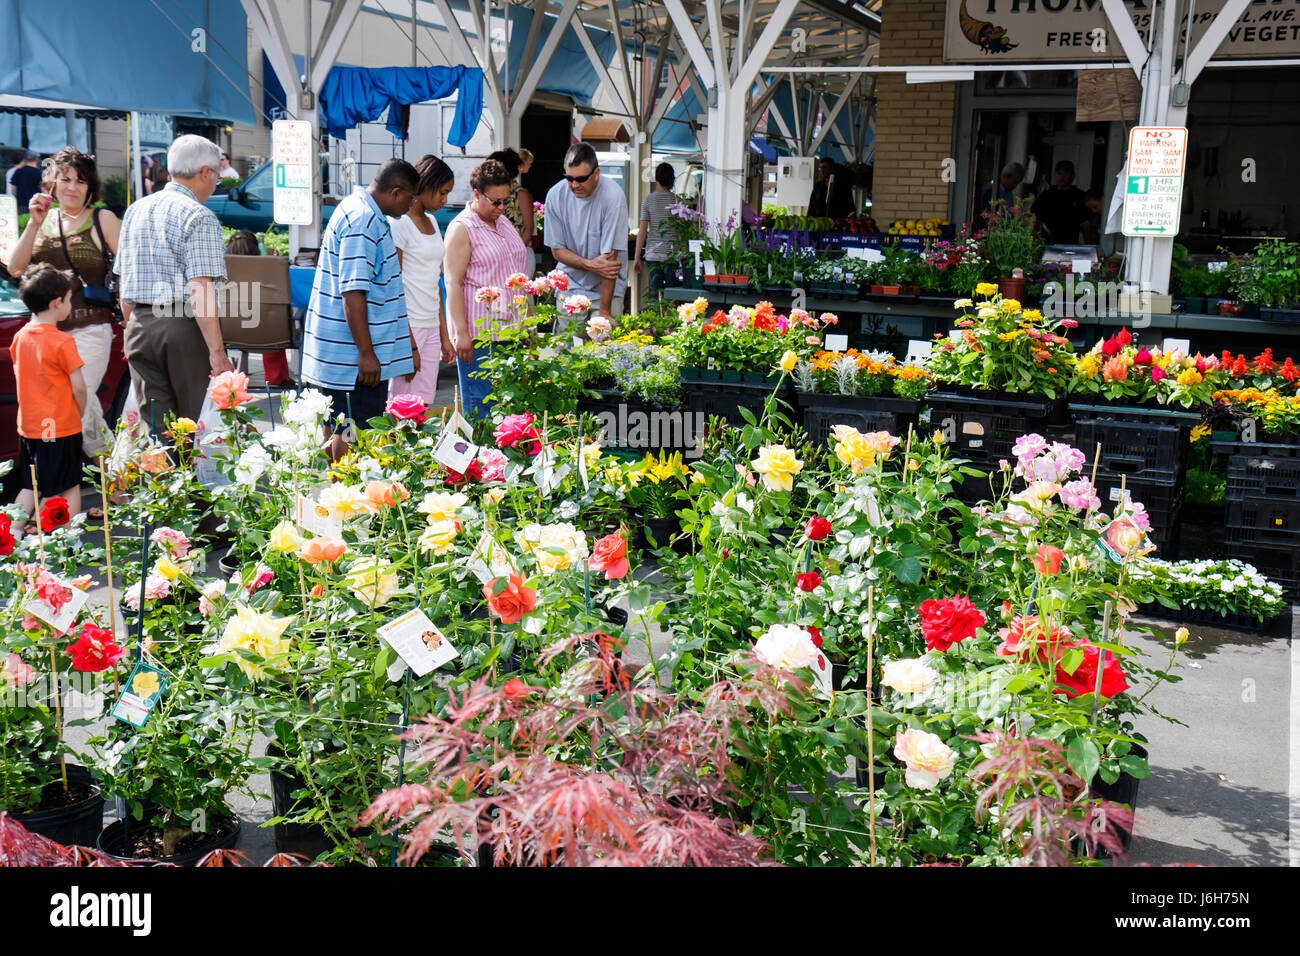 Virginia Roanoke Market Square Farmers' Market plants for sale nursery potted plants shopping rose bush flower - Stock Image